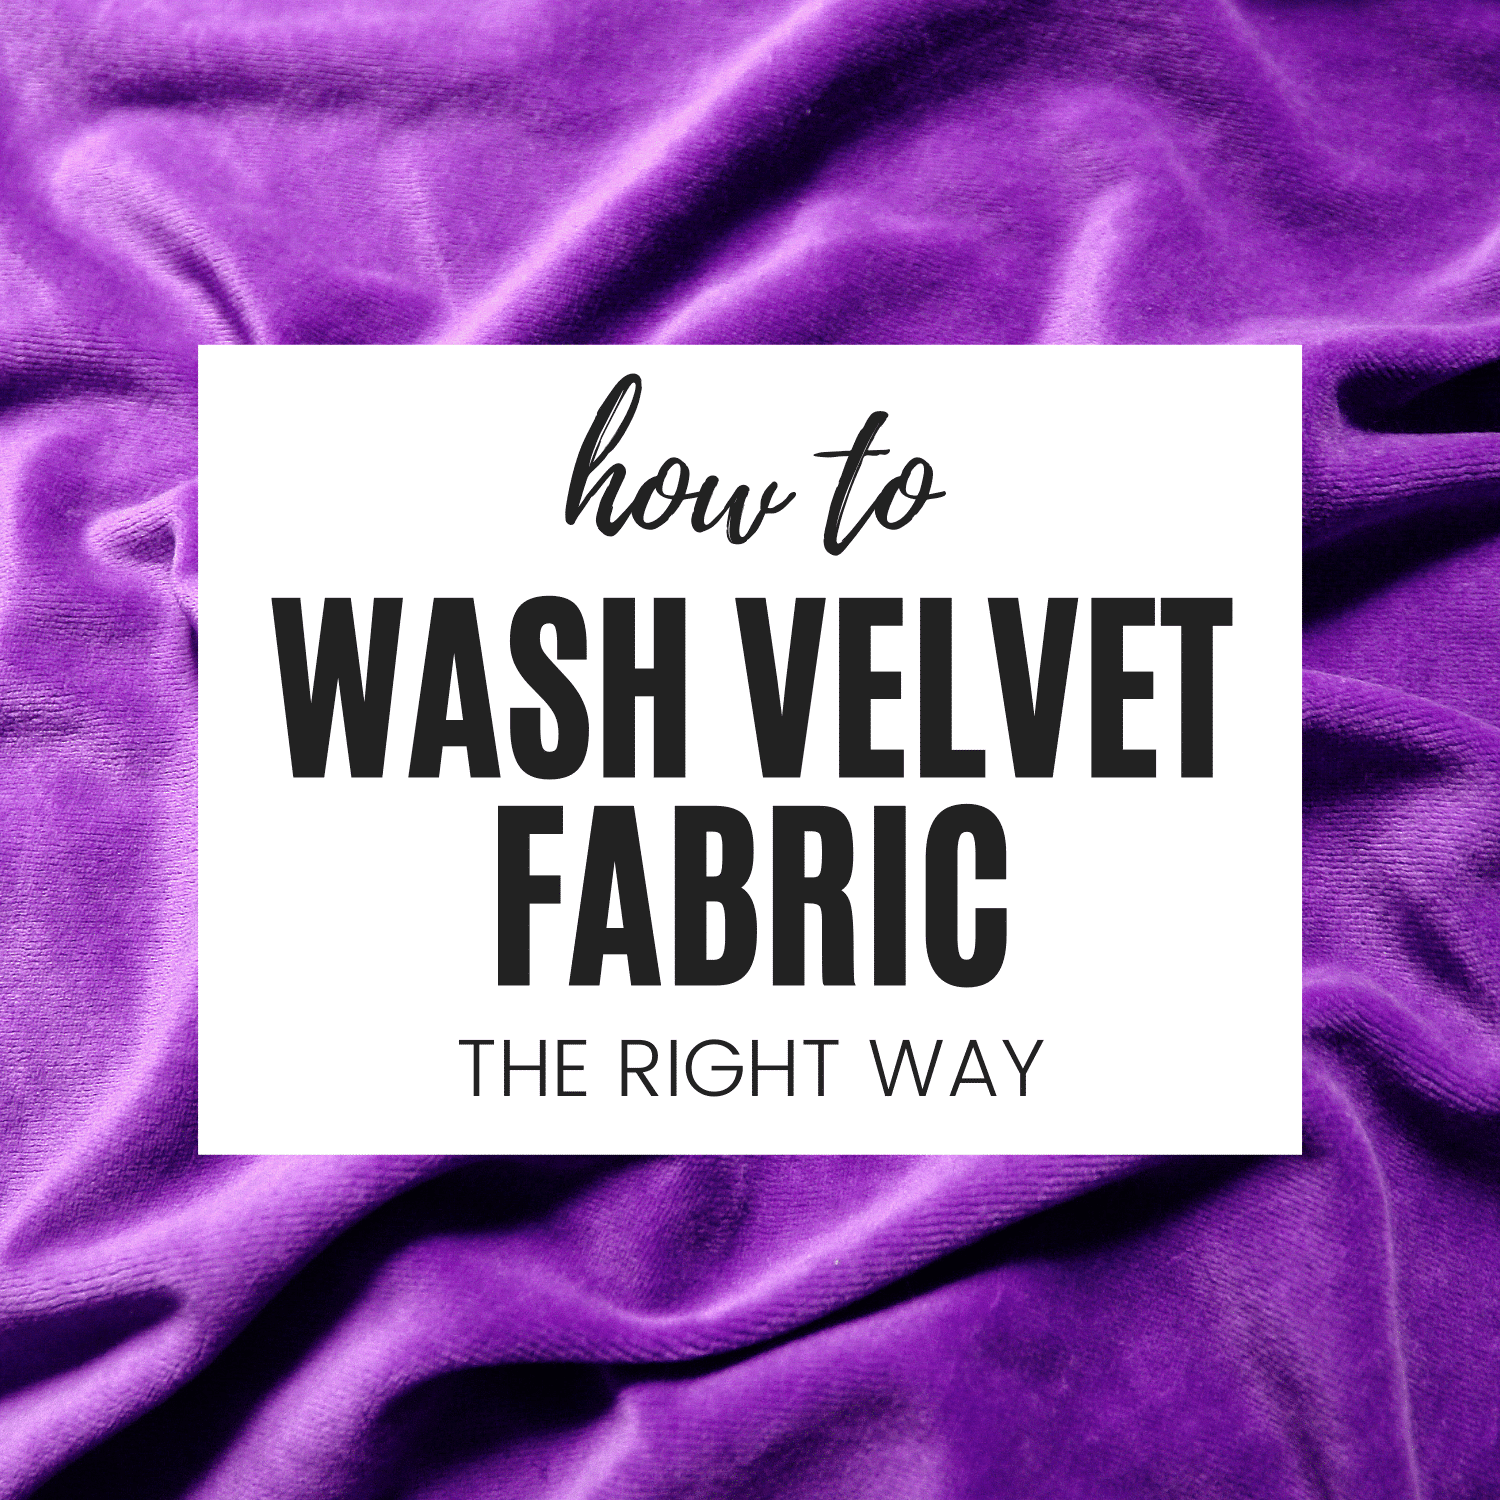 How to Wash Velvet Fabric (Clothes, Durags, Scrunchies)